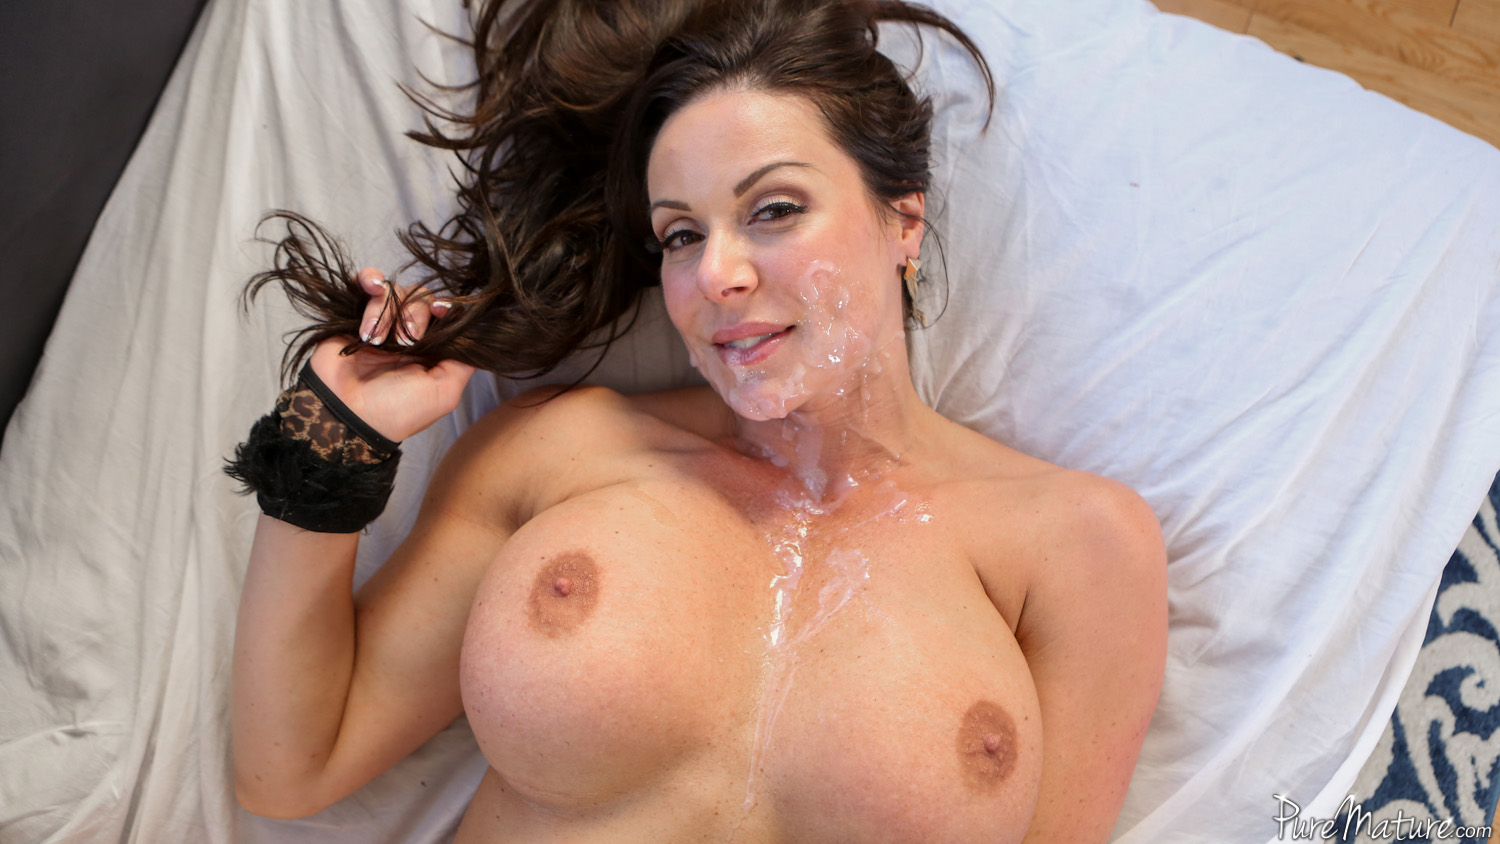 Remarkable, rather Kendra lust milf sex simply does